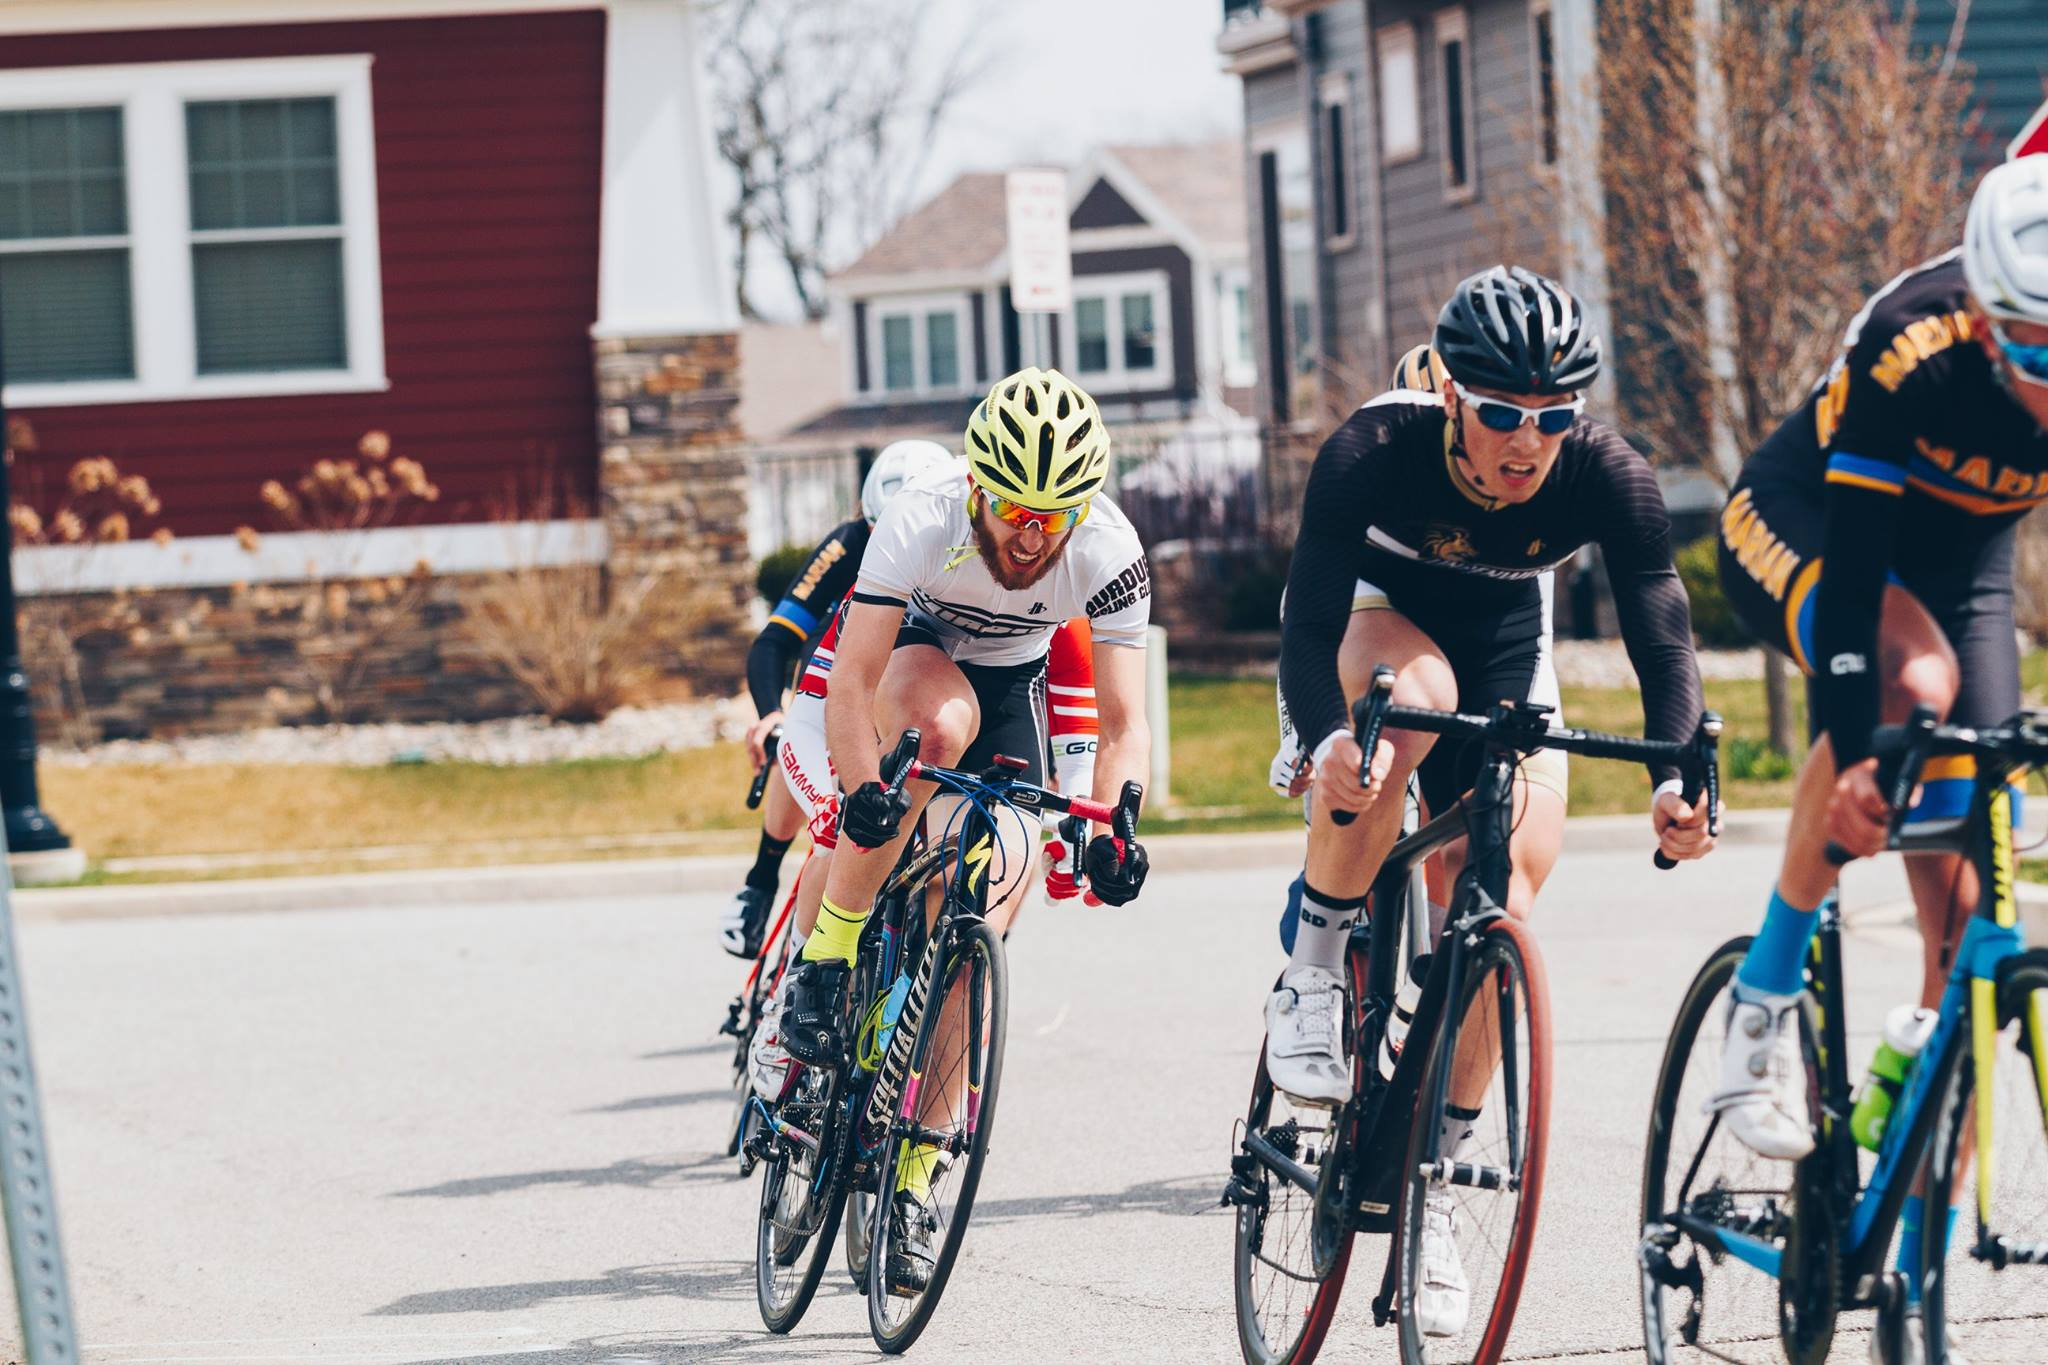 Justin Miller in Men's A crit  photo by AA Photography https://www.facebook.com/AustinAndersonPhotography/?hc_ref=SEARCH